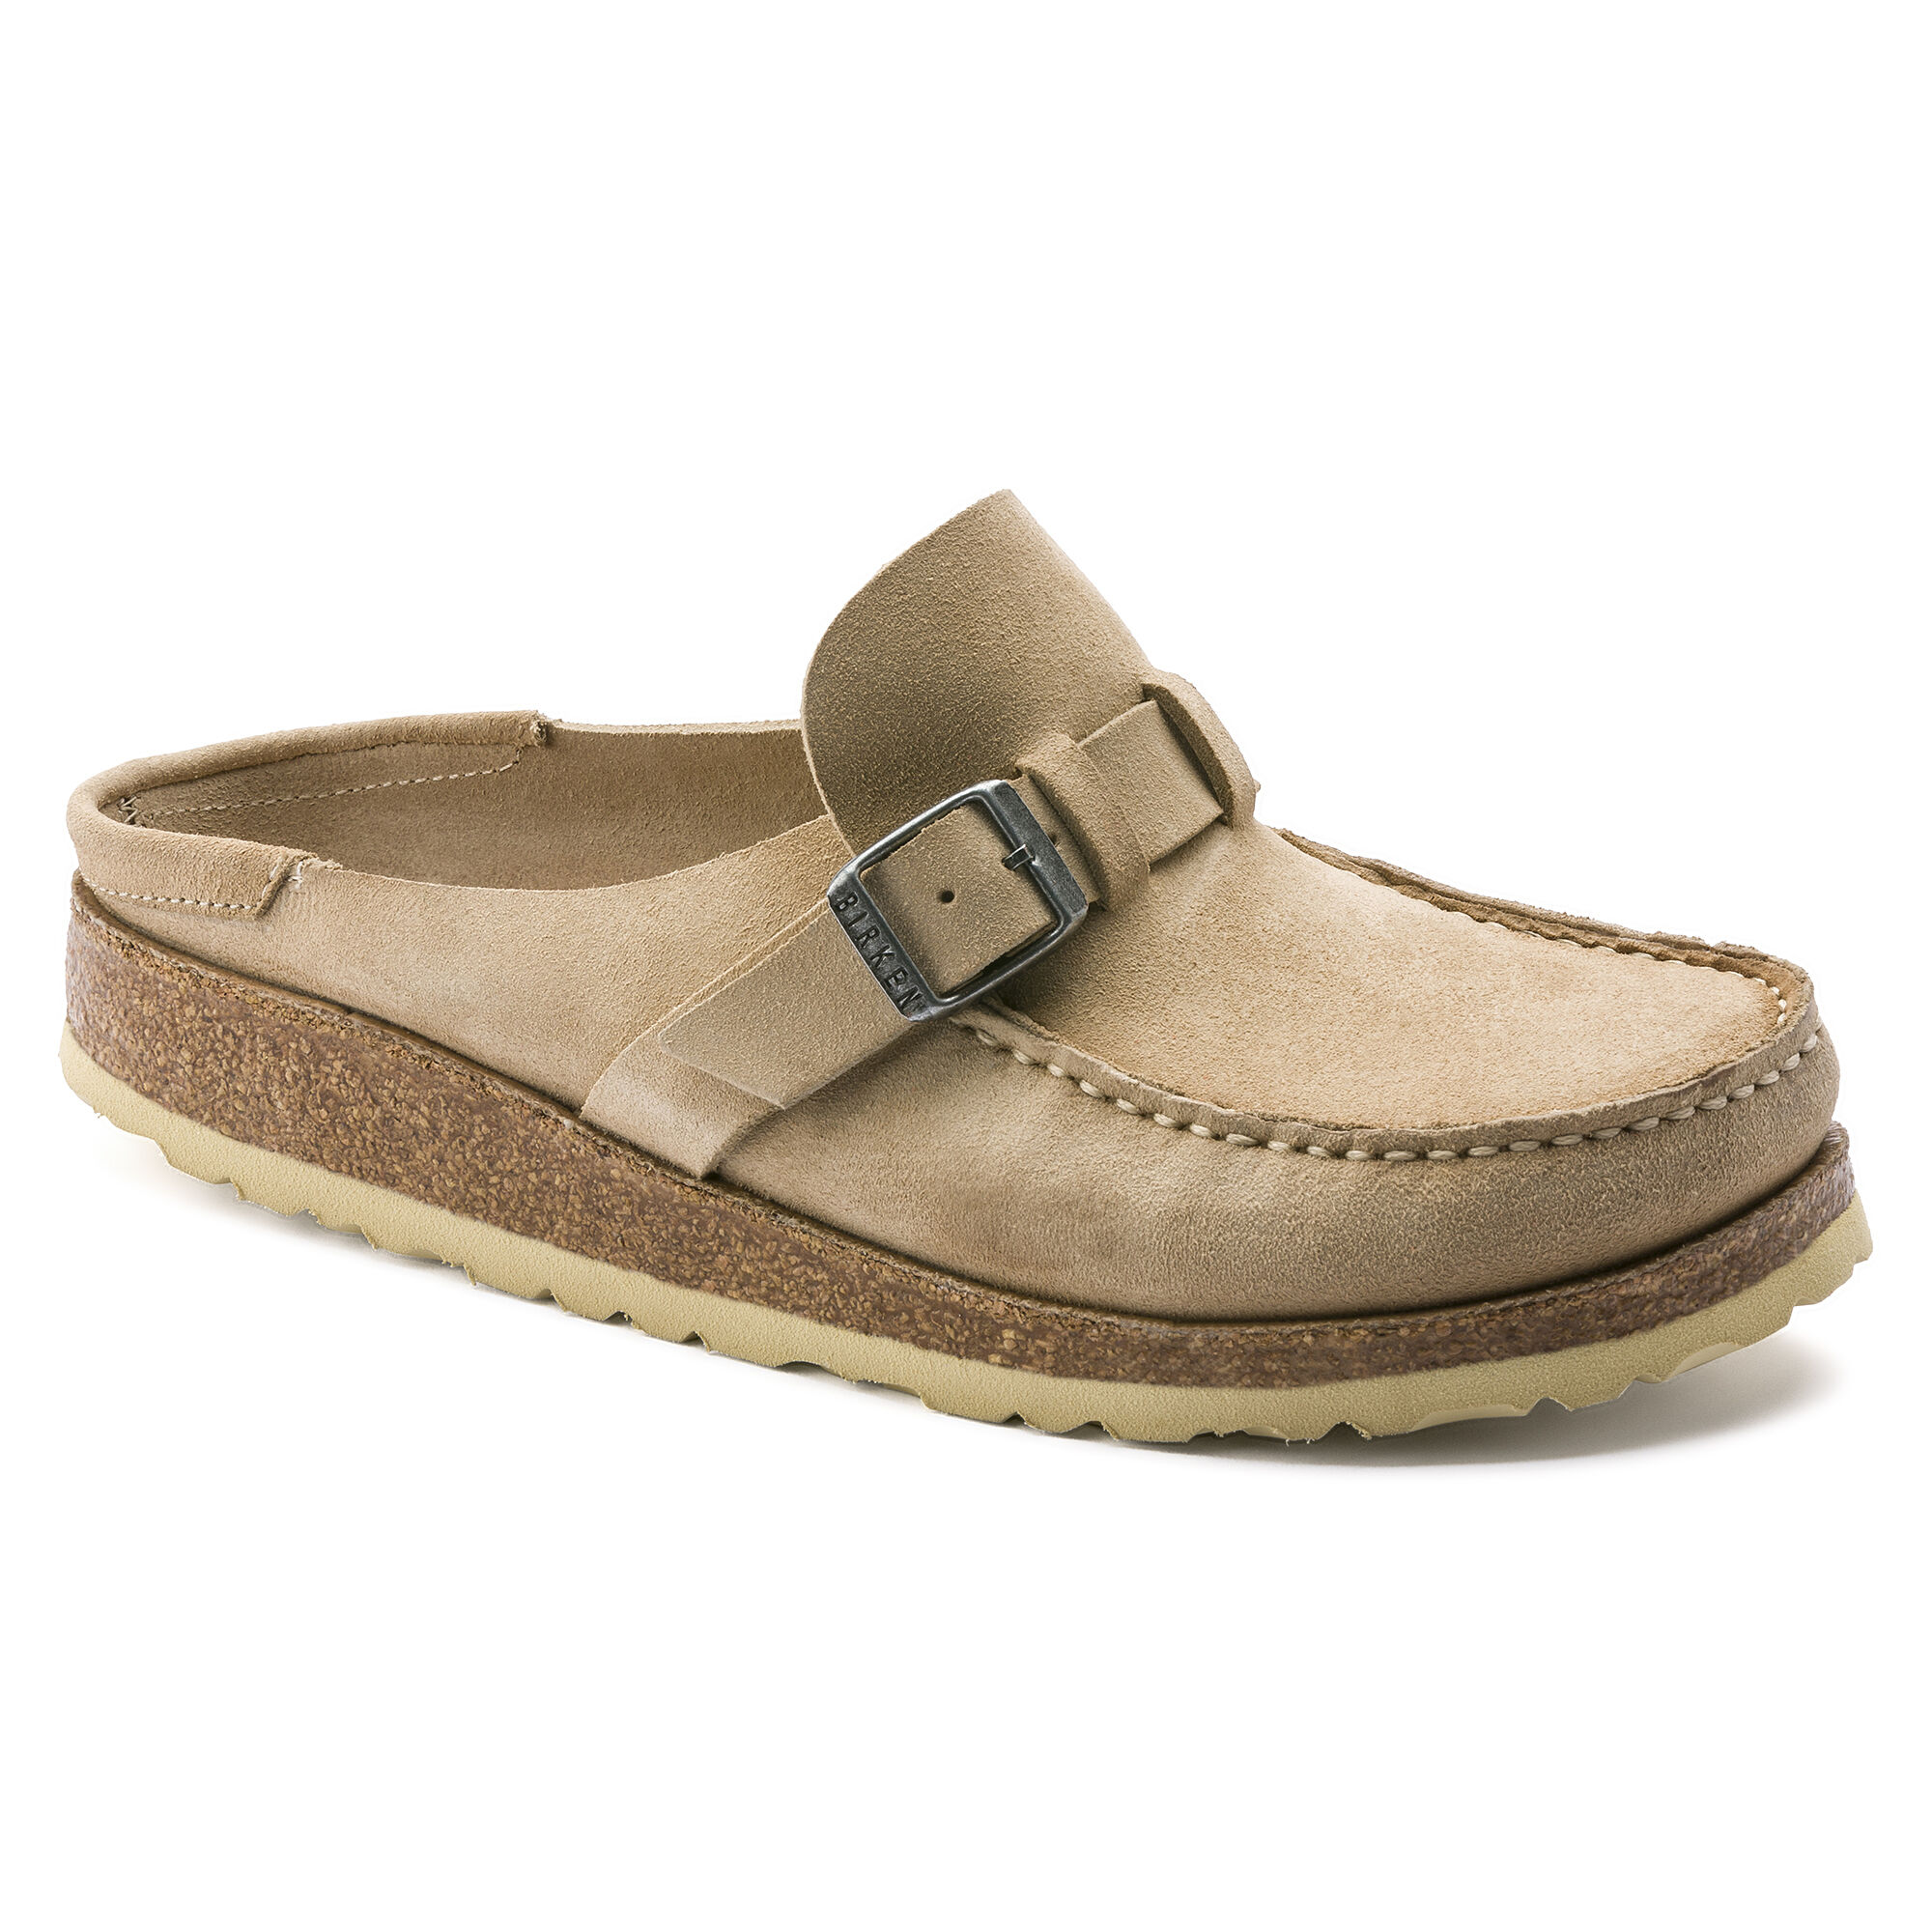 Buckley Suede Leather Sand | shop